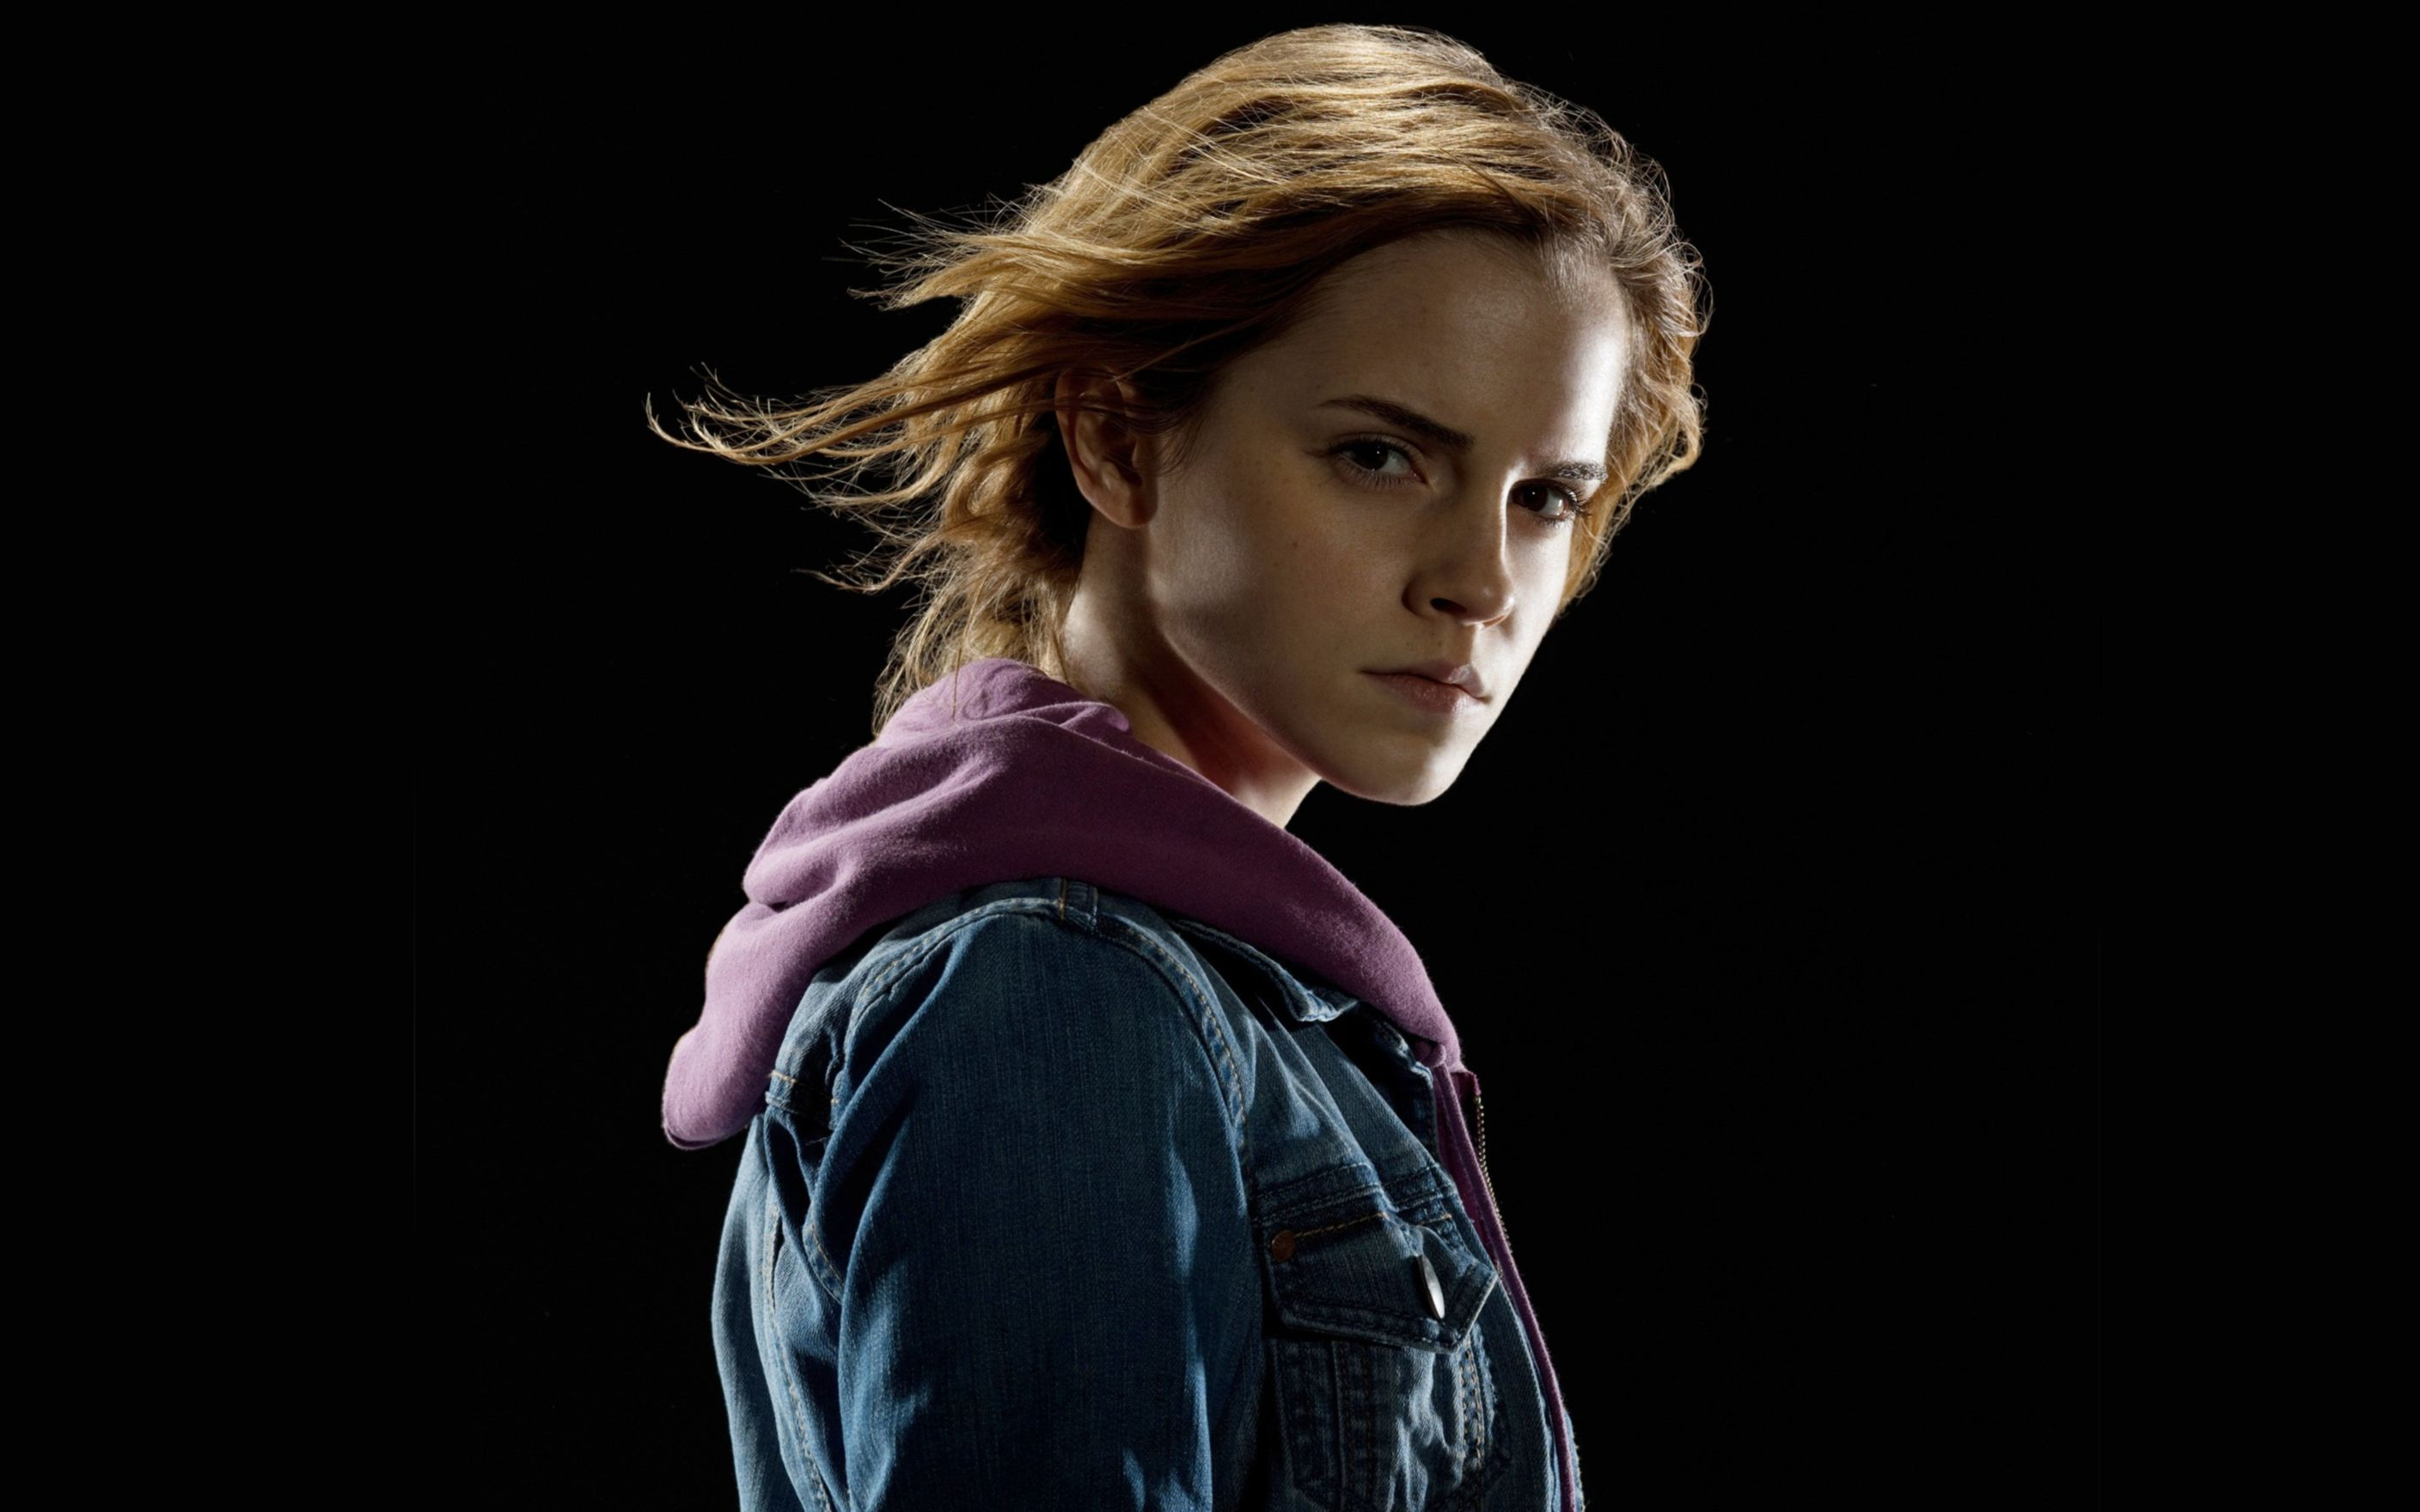 Download free HD Emma Watson 284 Wide Wallpaper, image